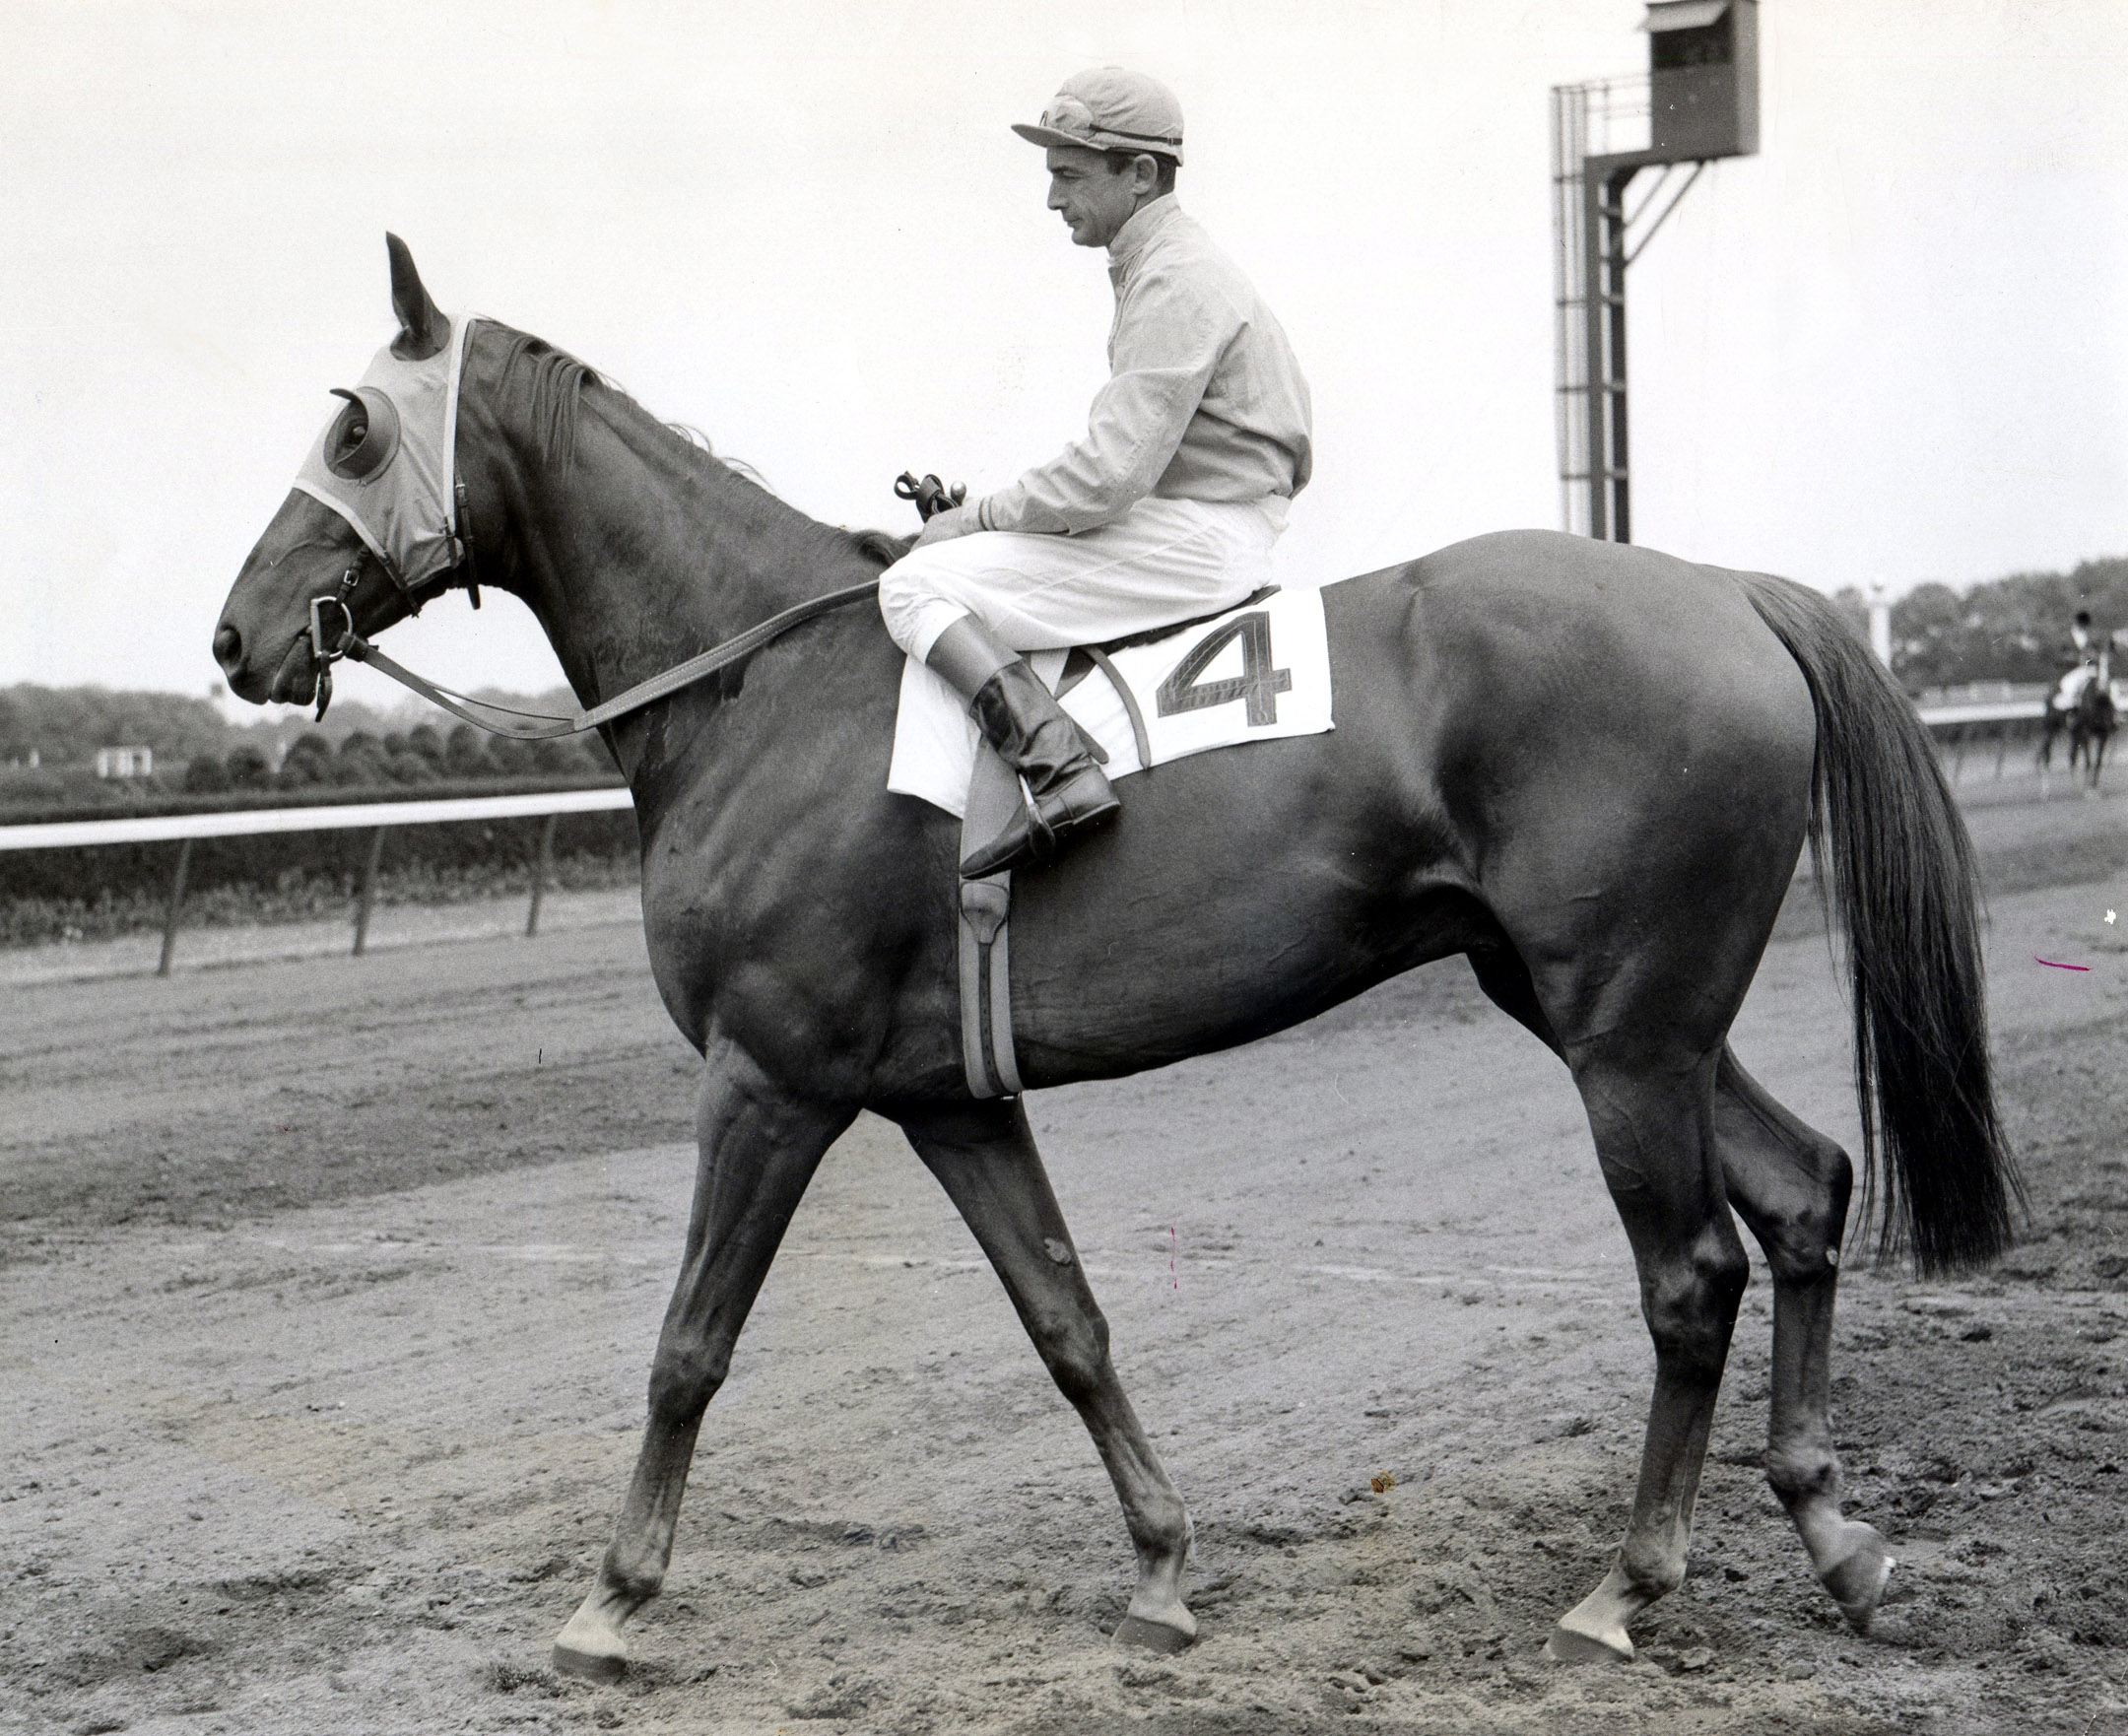 Neji with Ted Atkinson up at Belmont Park, 1956 (Bert and Richard Morgan/Museum Collection)